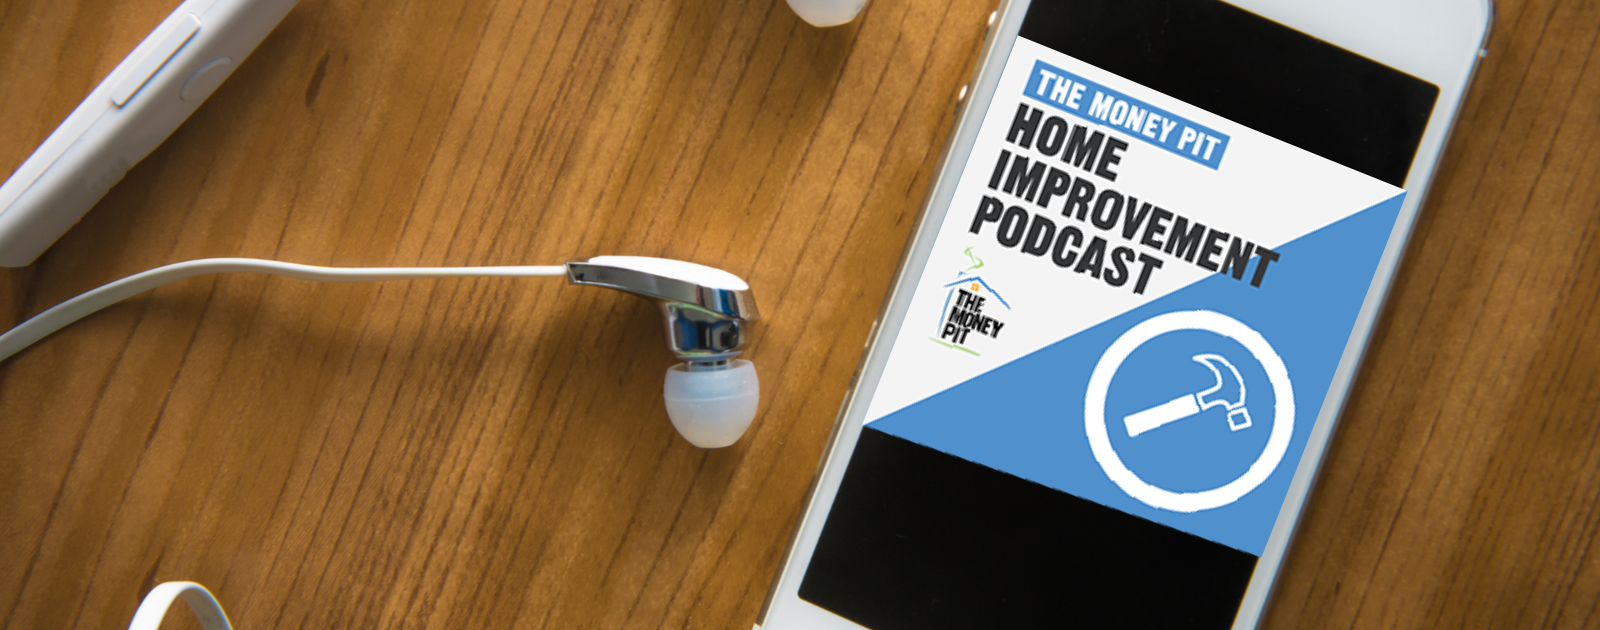 The Money Pit Podcast Subscriptions Options